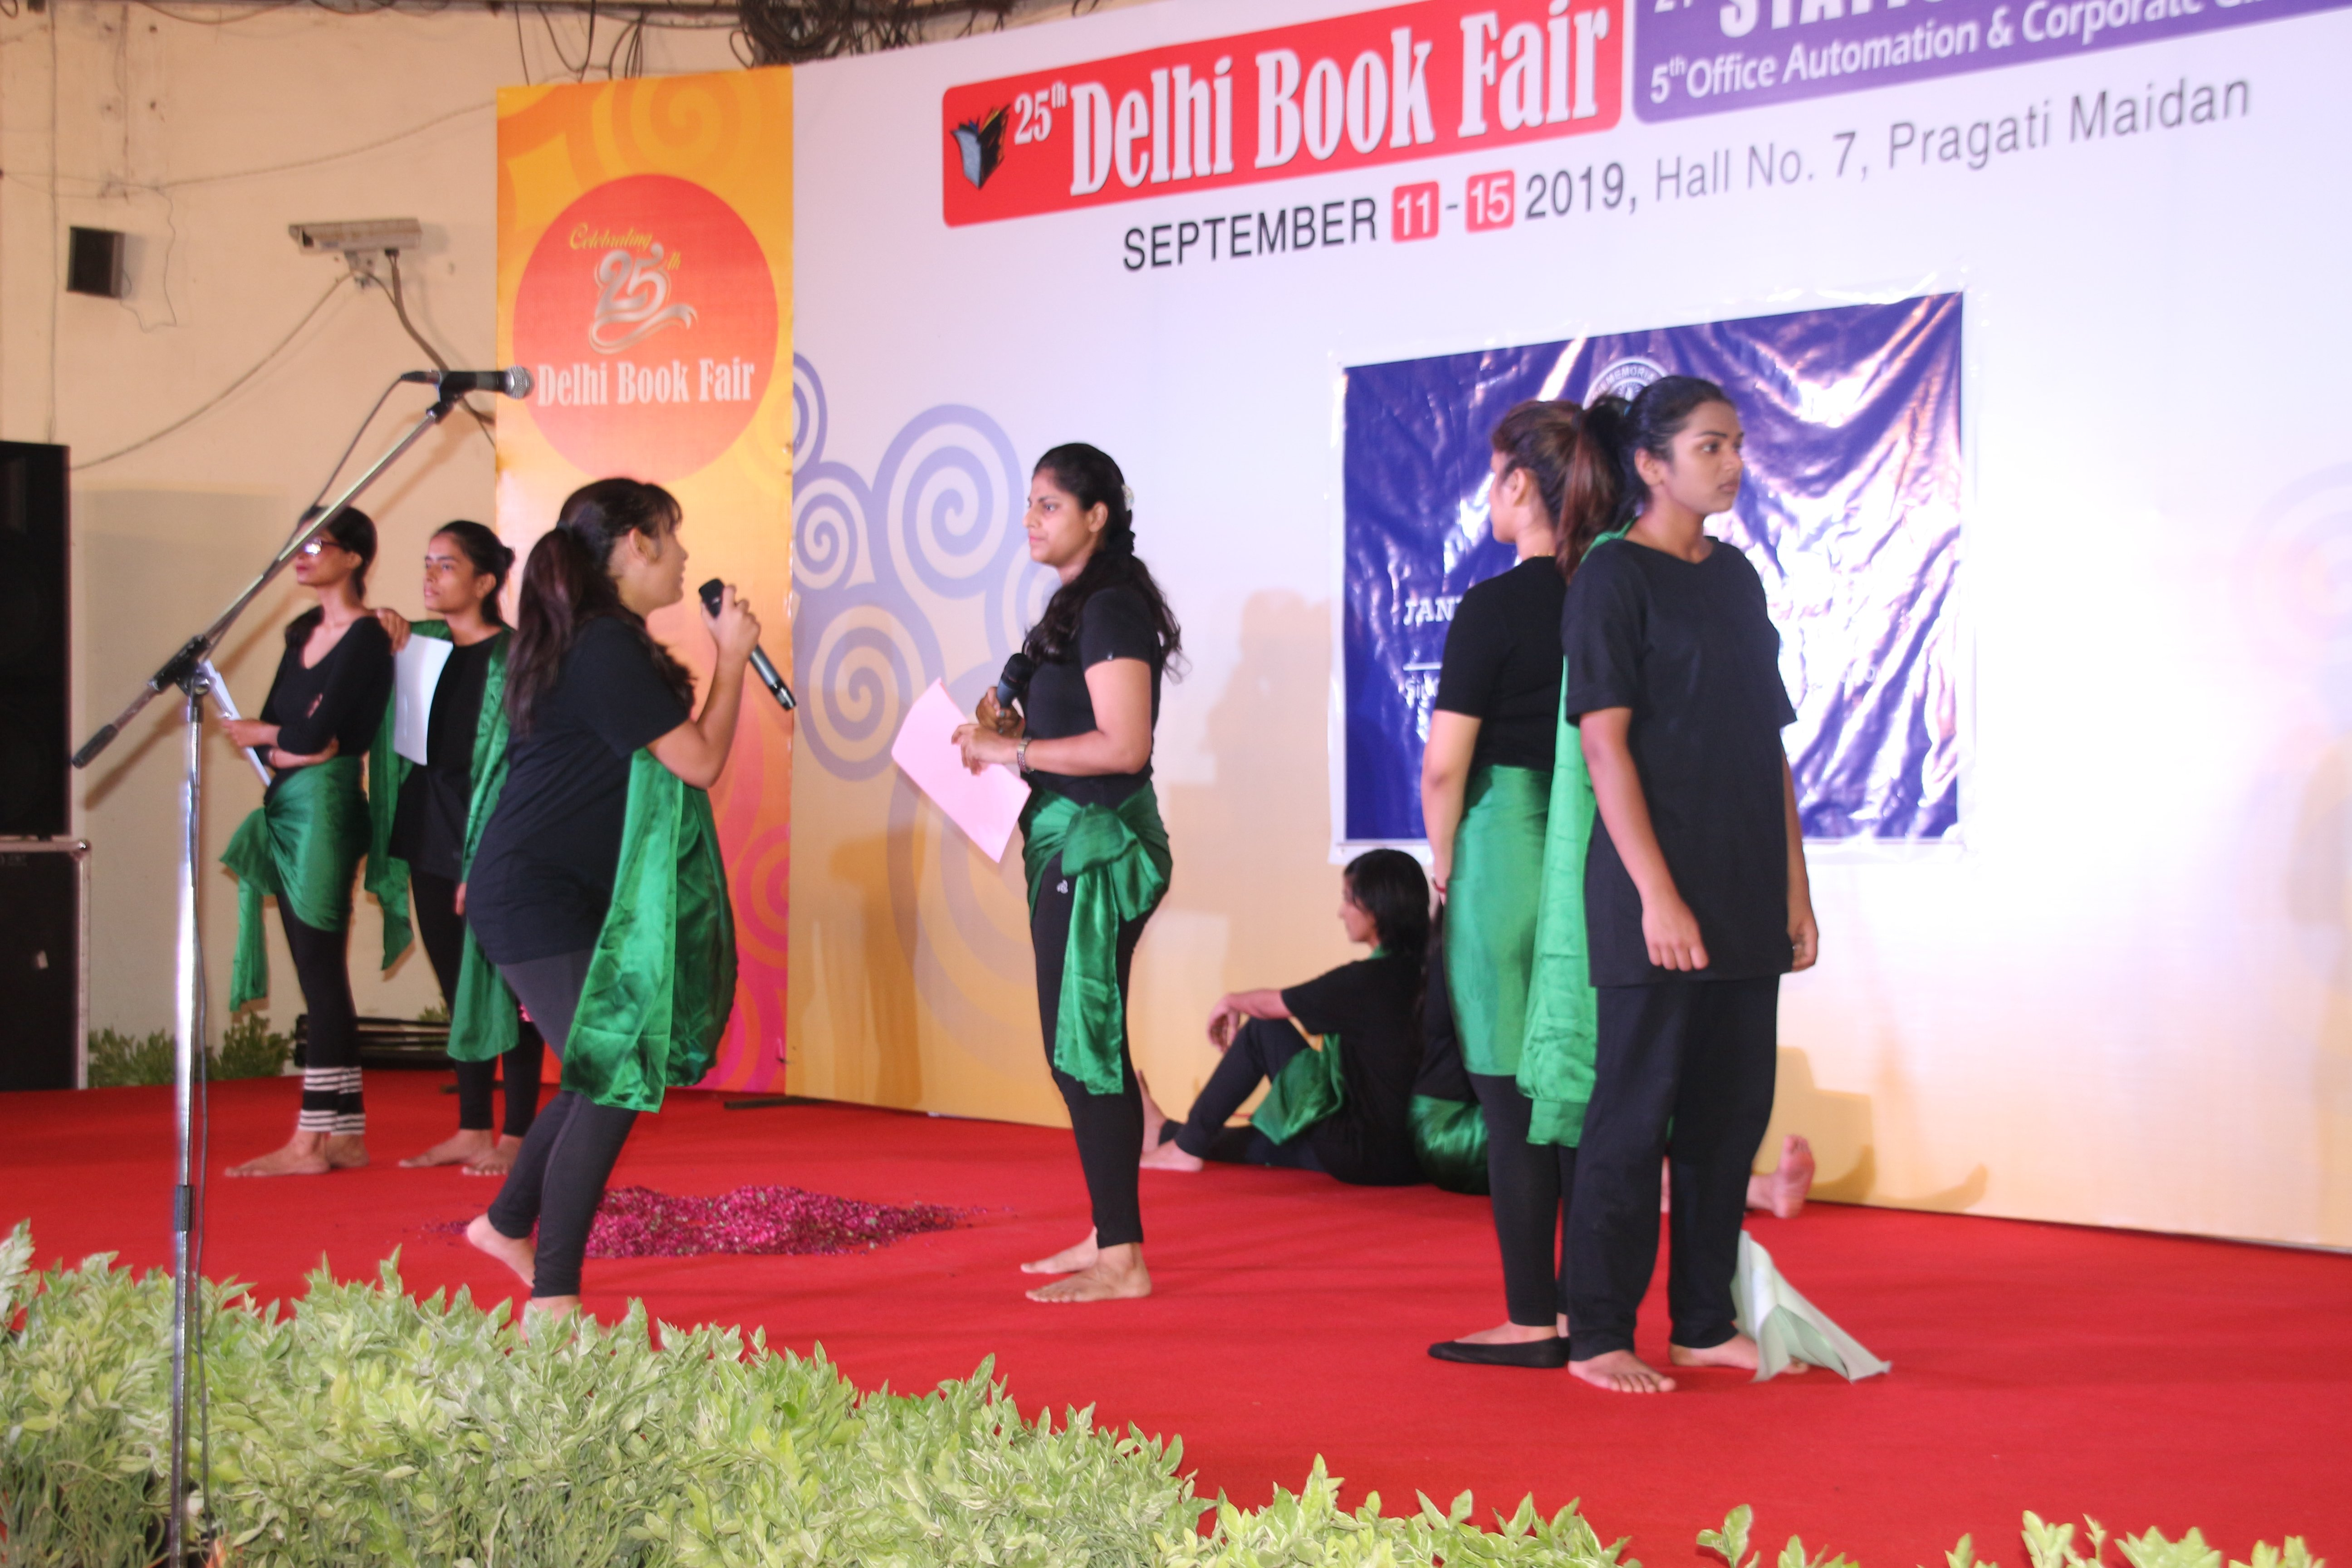 A drama performance during the book fair by students. Photo IPP